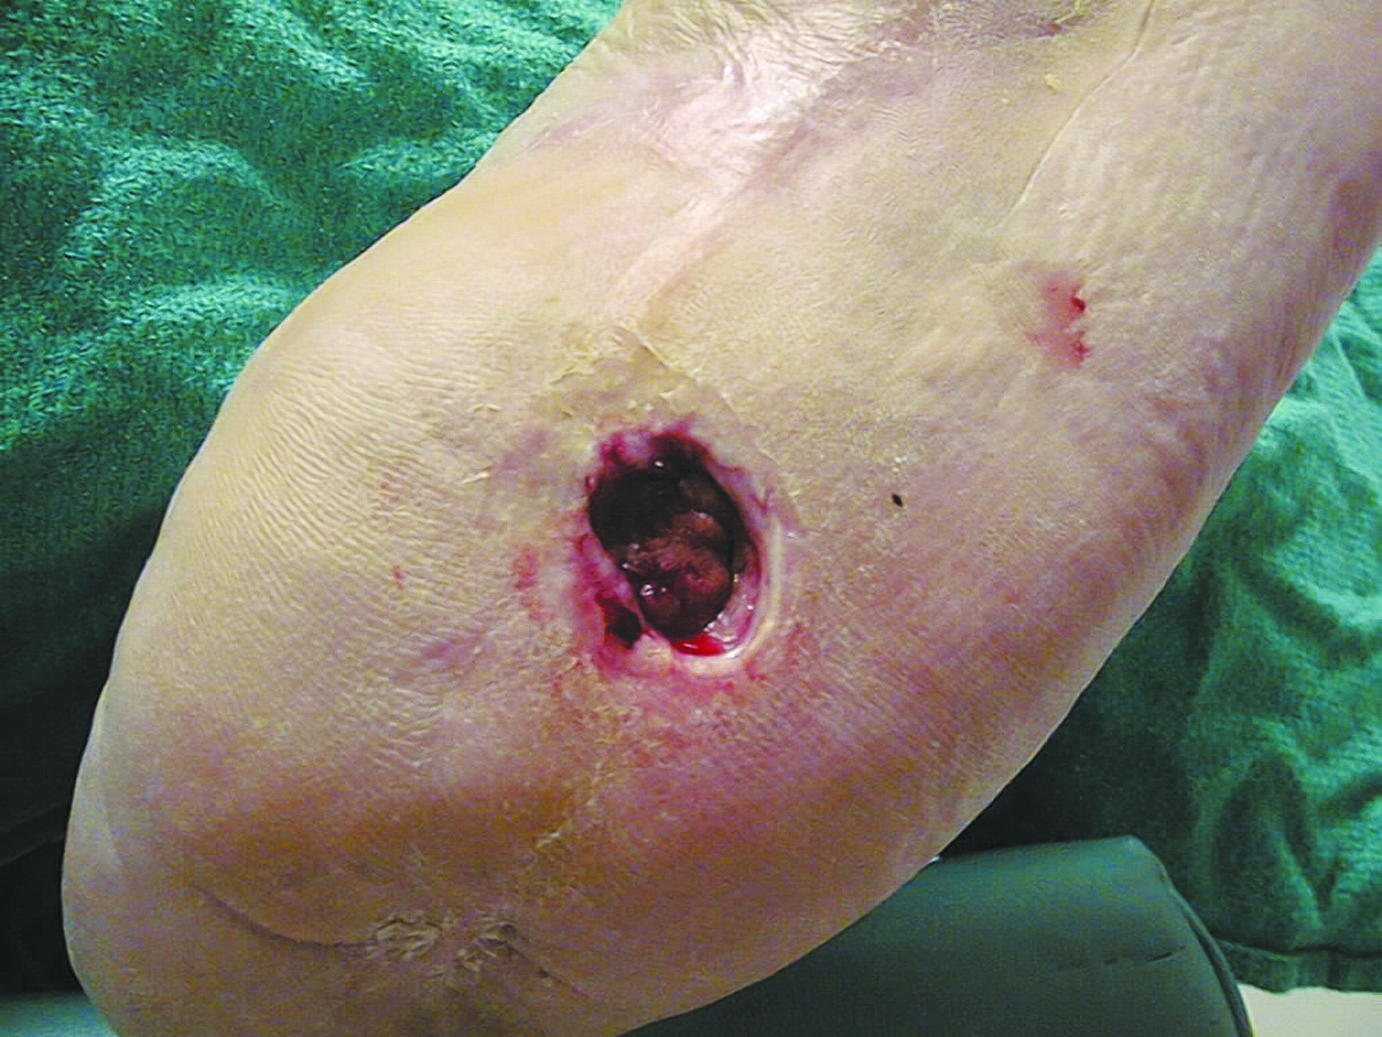 Diabetic foot ulcerations (DFUs), as shown above, are one of the most common complications associated with diabetes with an annual incidence of 6.3 percent worldwide. Diabetic patients have a 19 to 34 percent likelihood of having lower extremity ulcers in their lifetime. Photo courtesy of David G. Armstrong, DPM, MD, PhD